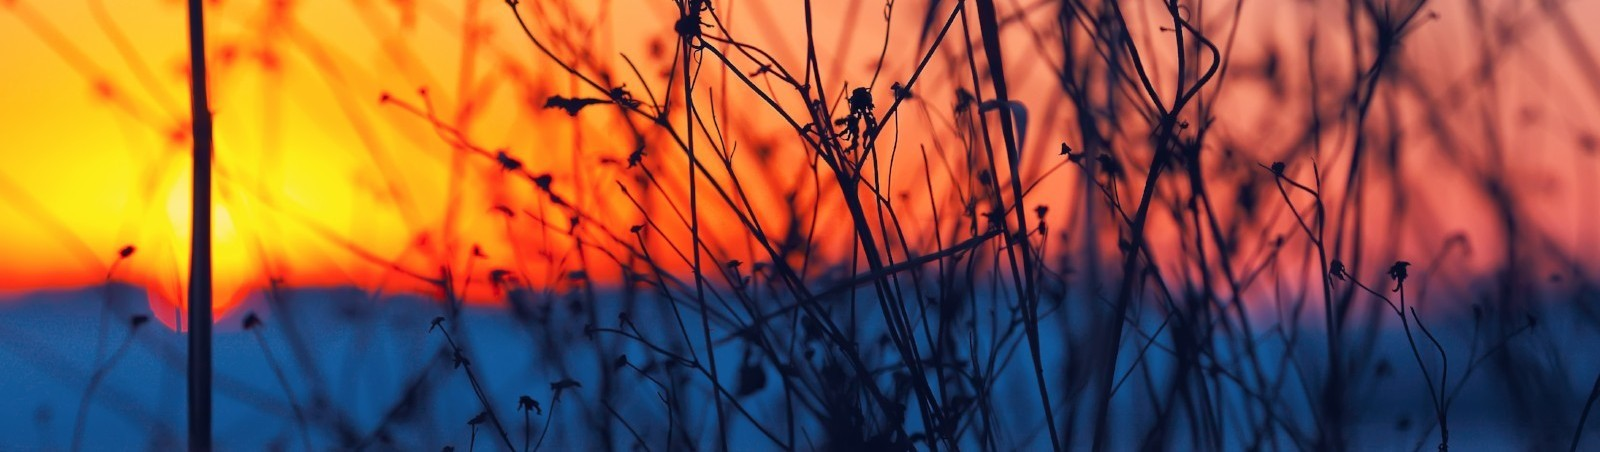 A bare shrub in the foreground with a sunset in the background.